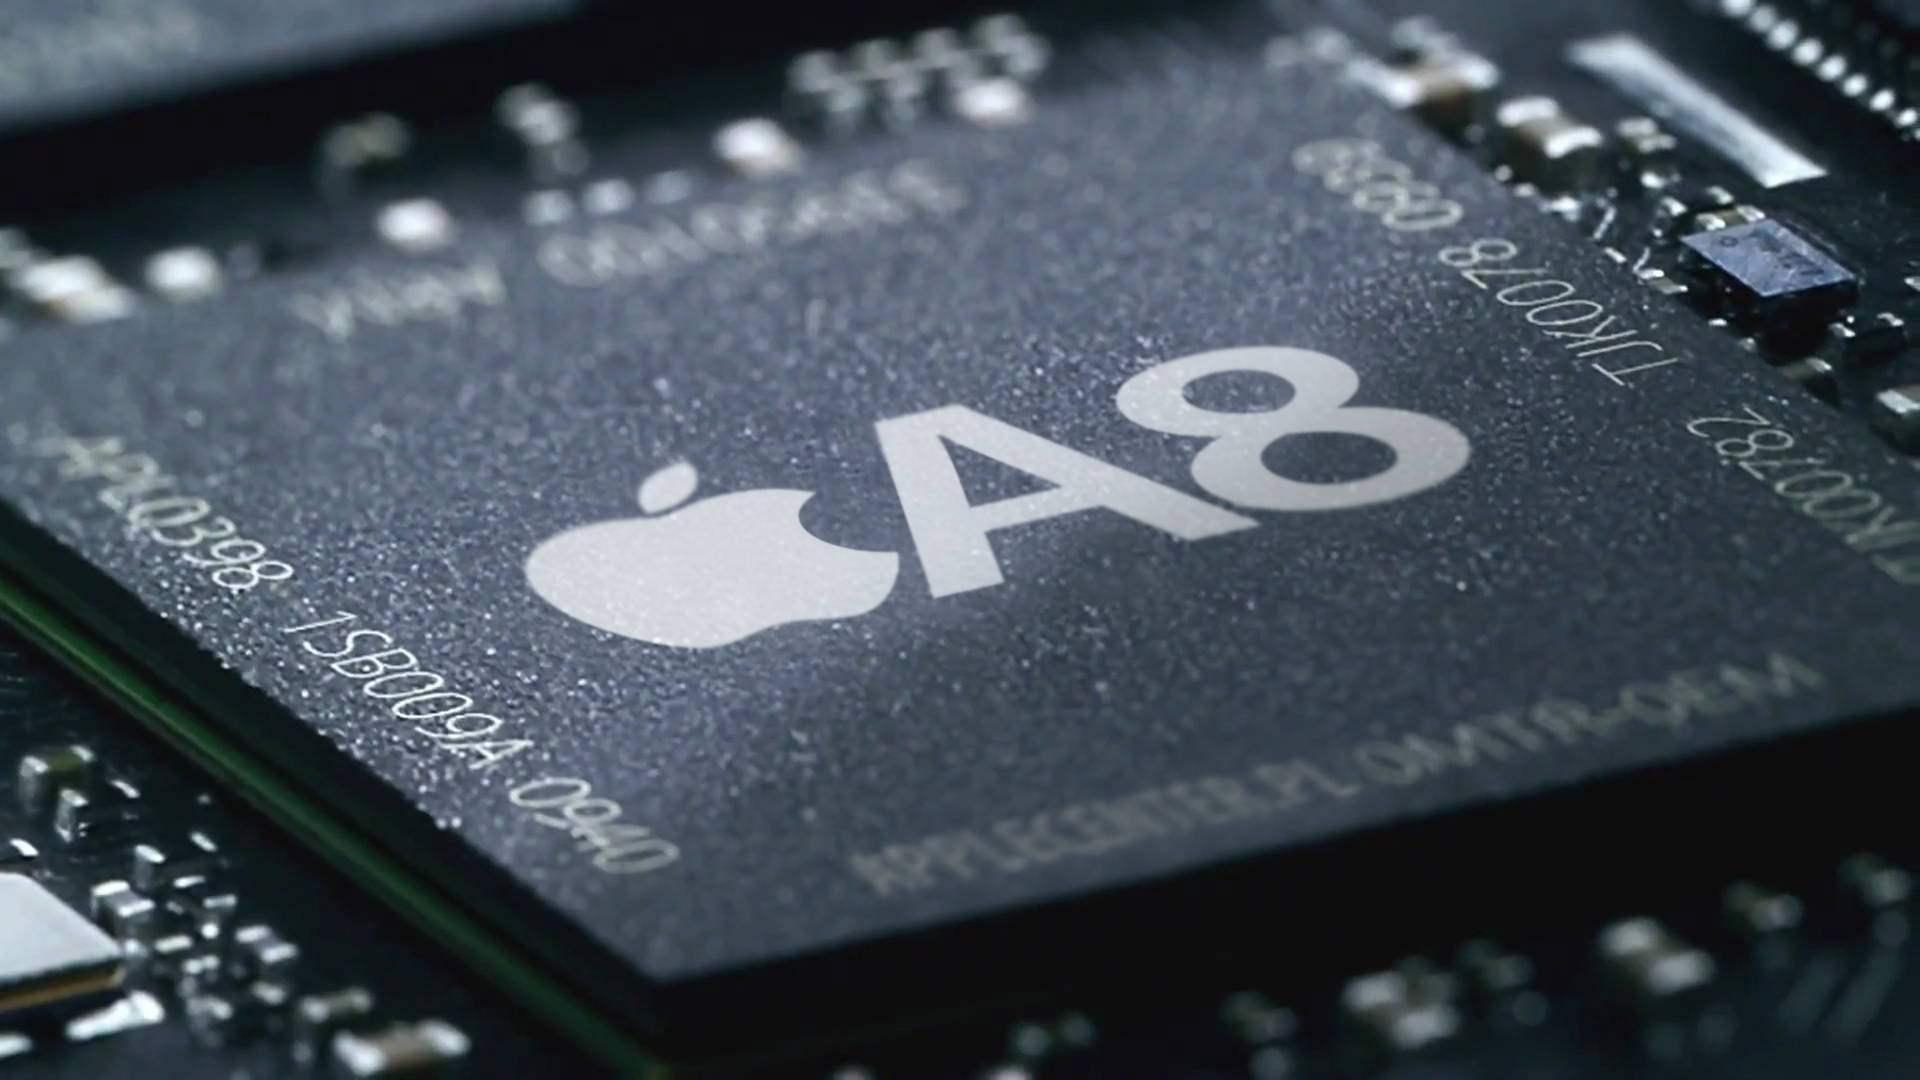 Apple Says $506M Judgement Against It For Patent infringement Was 'Fraught With Error'